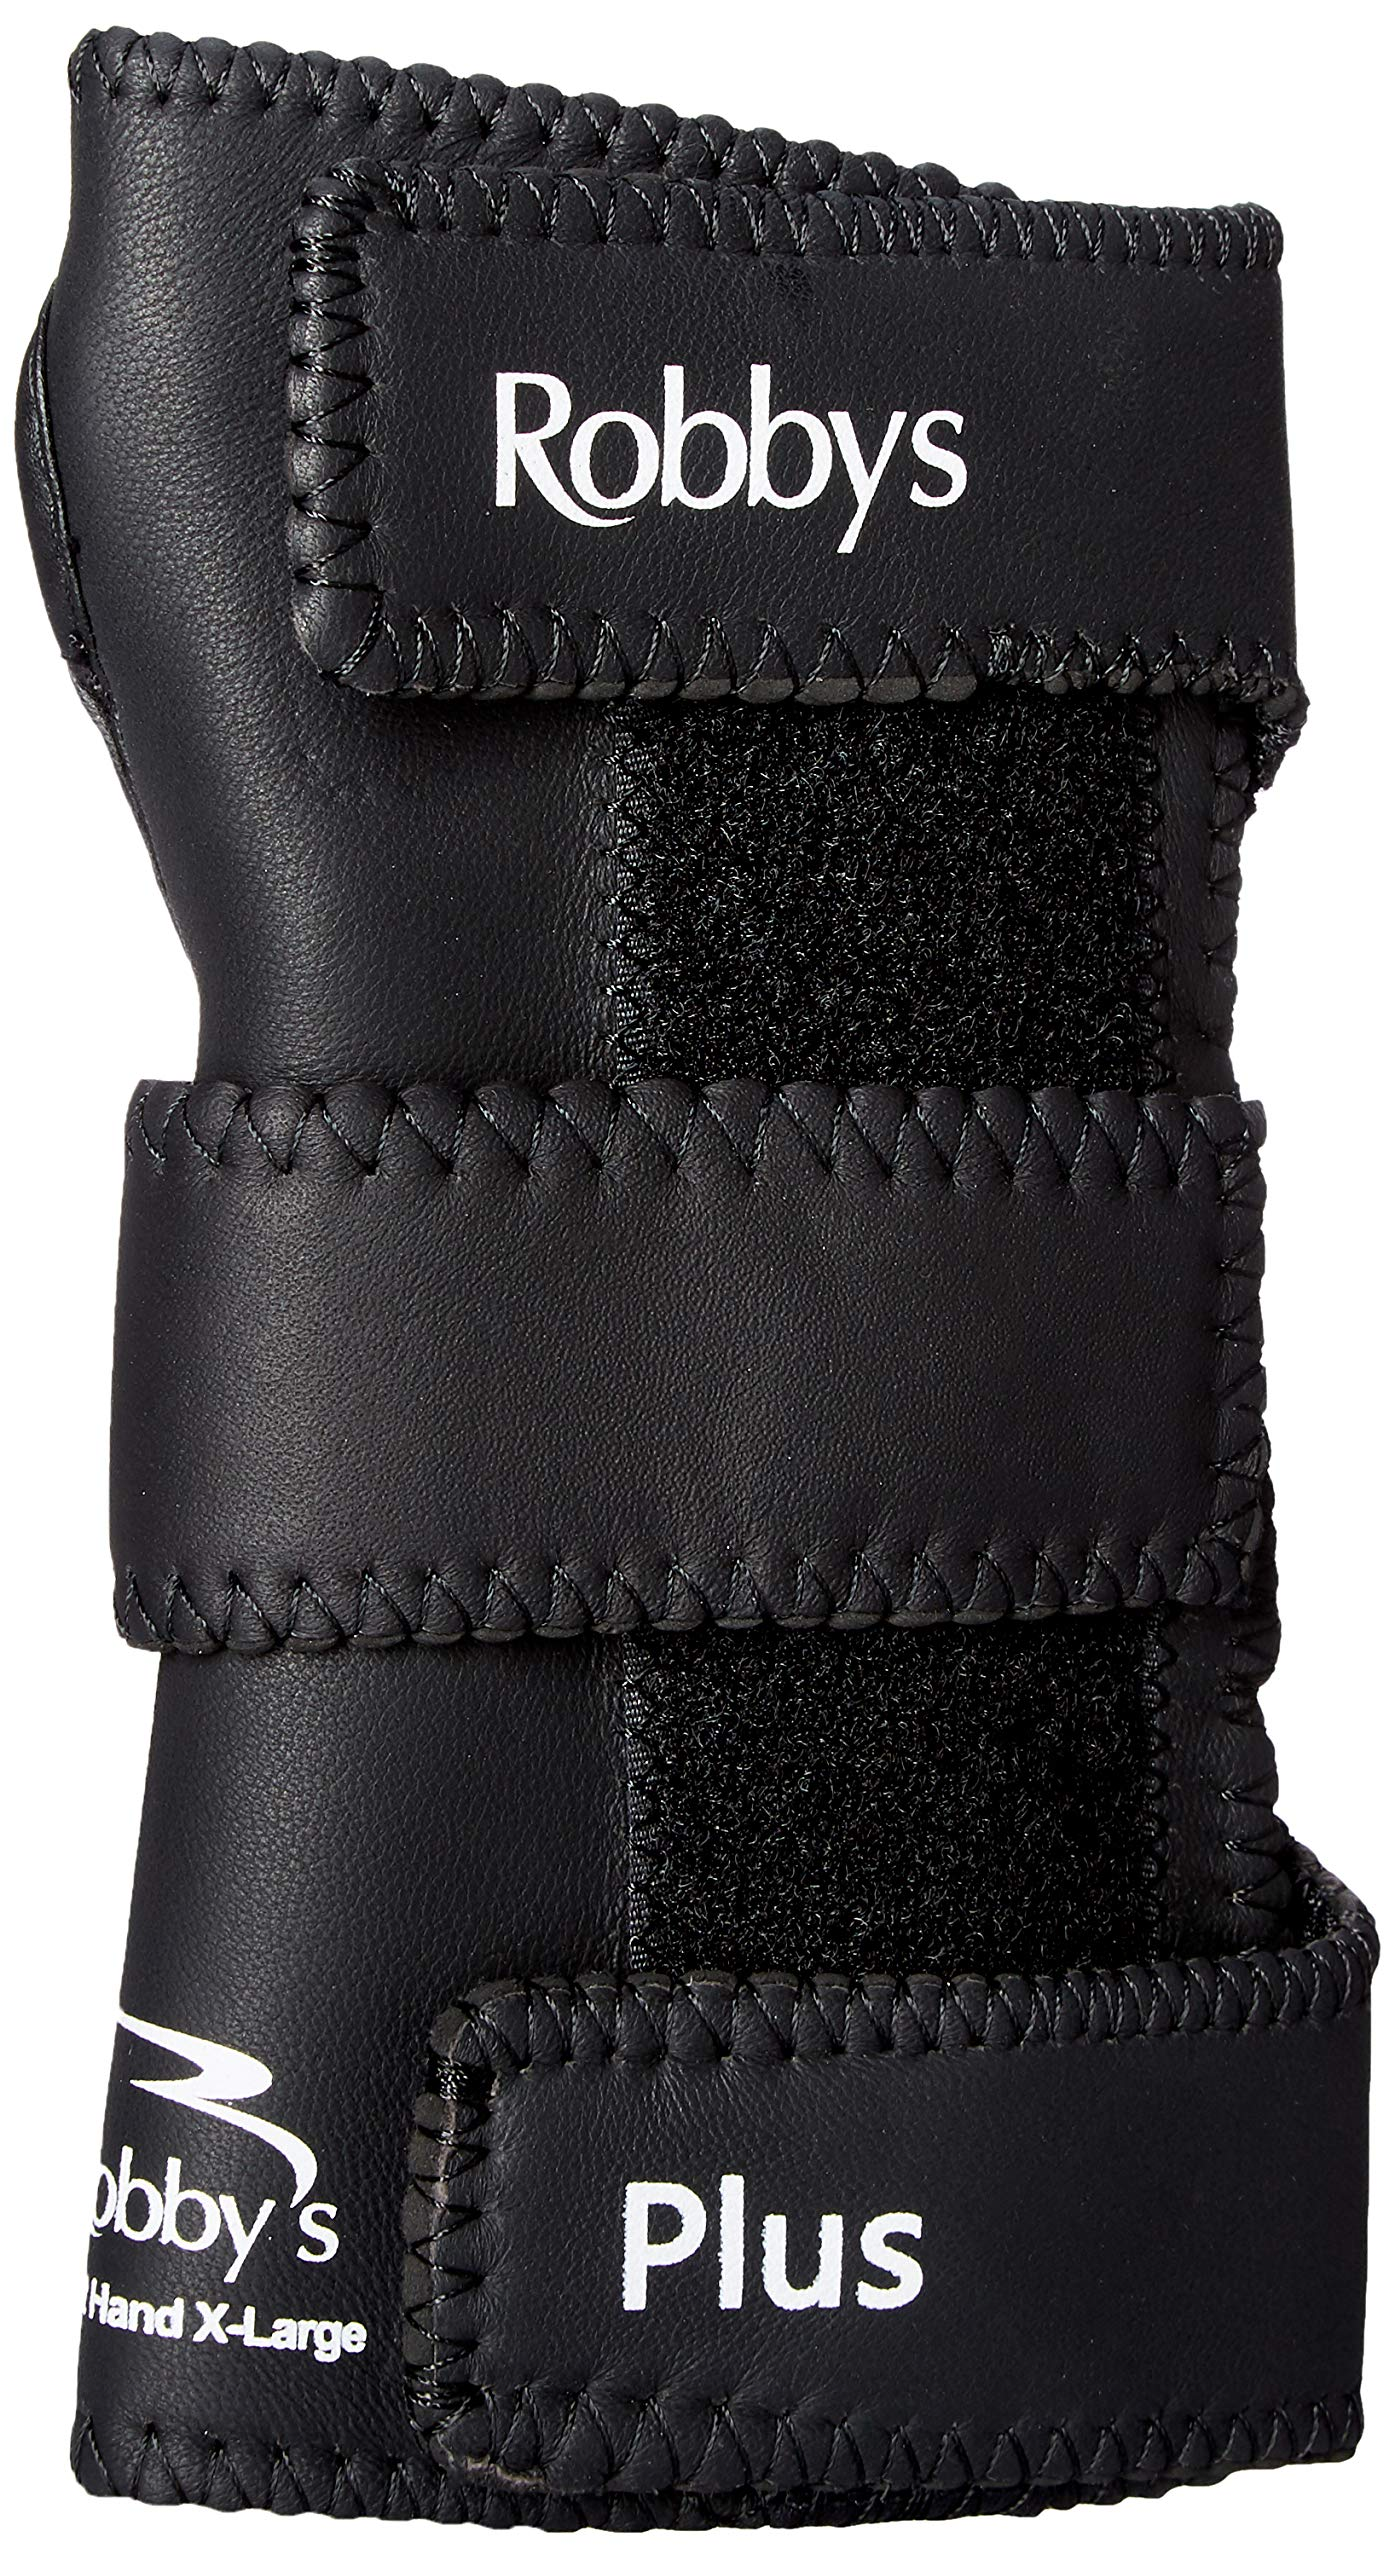 ace mitchell Robby's Leather Plus Right Wrist Support, Small